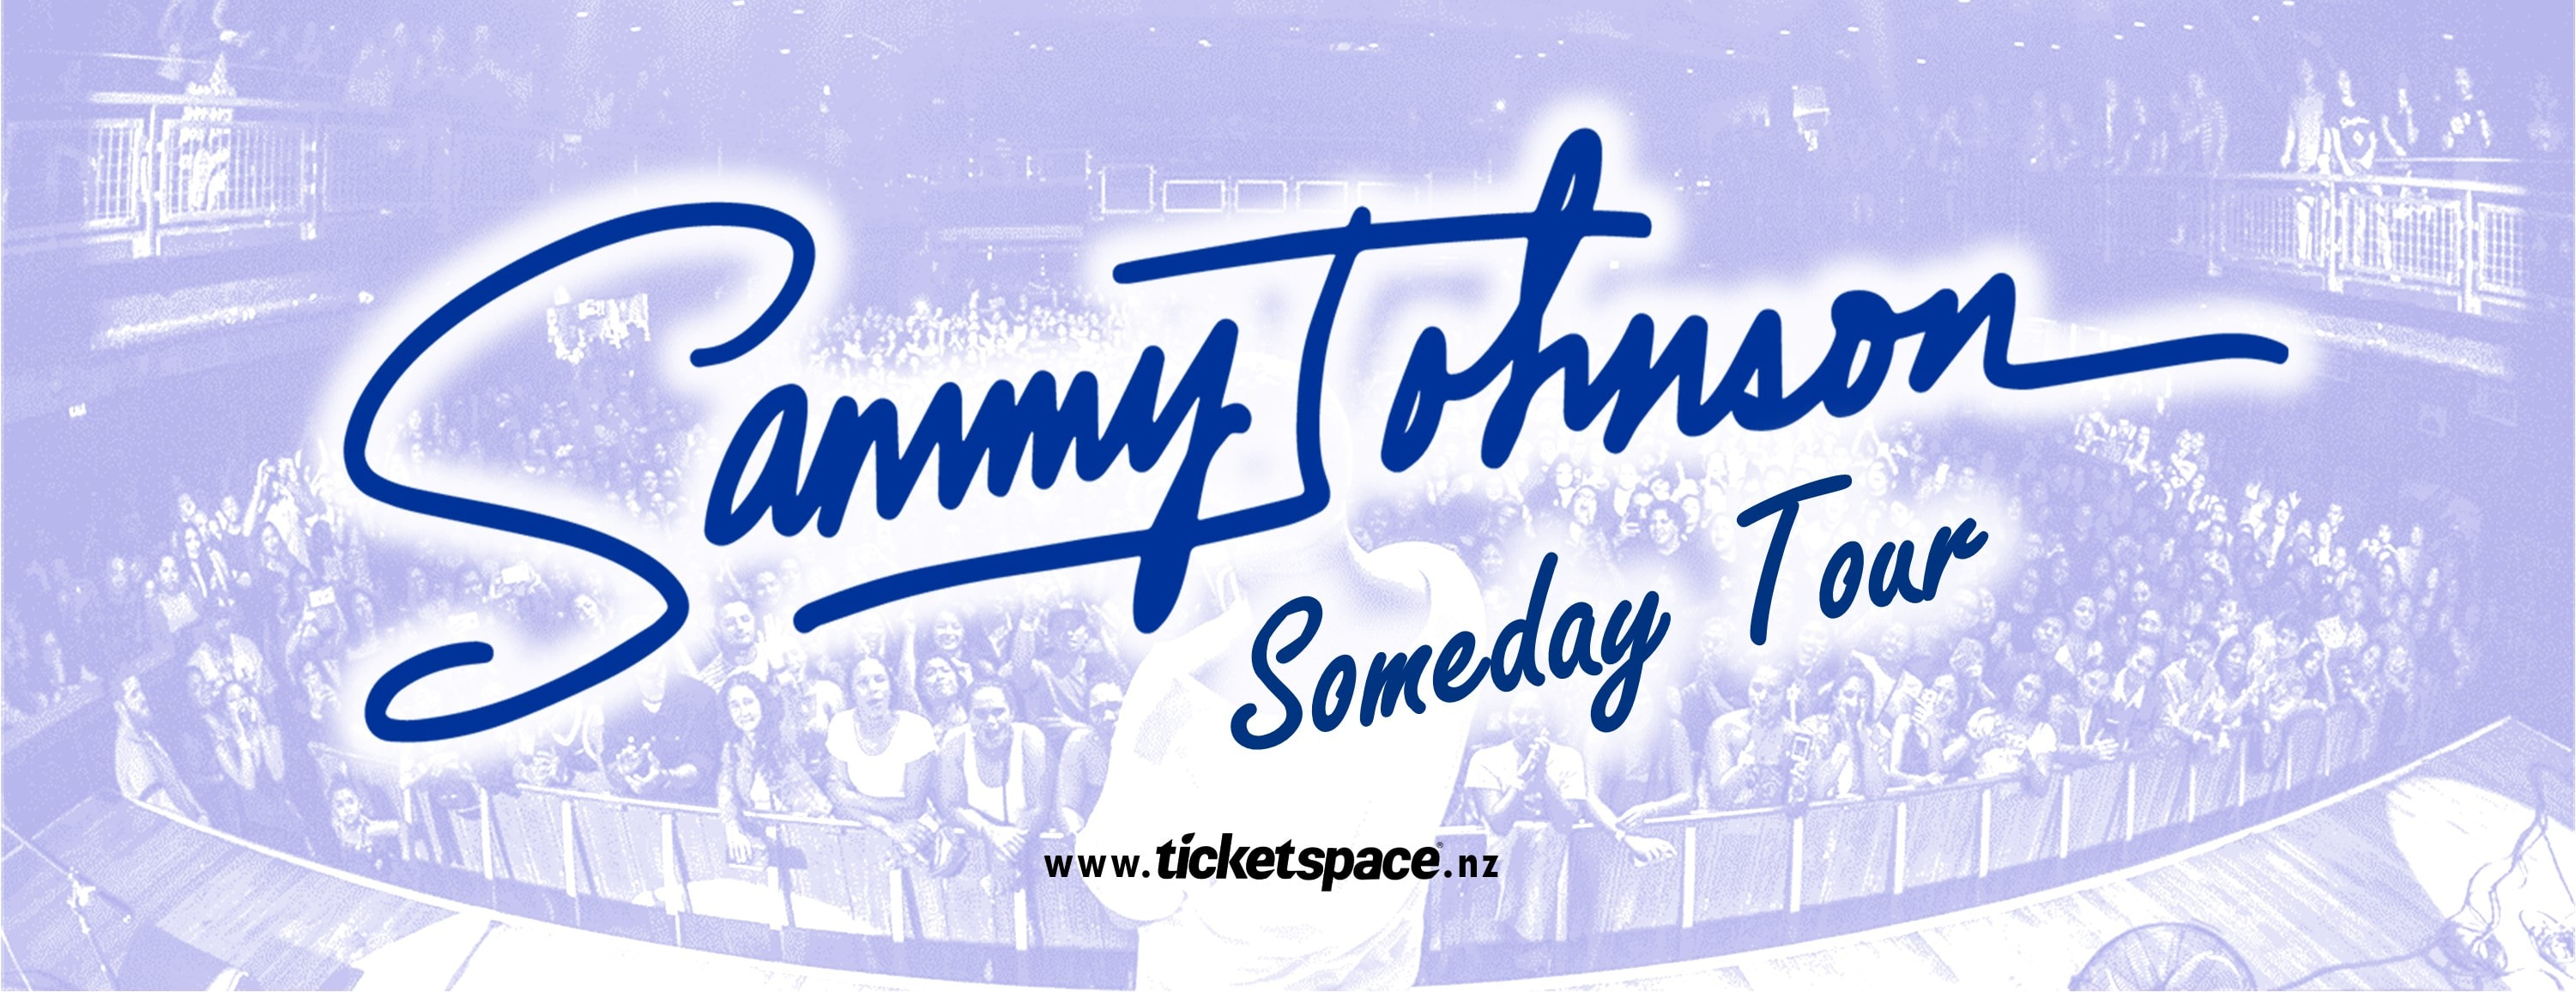 Tickets for SAMMY J 'Someday Tour' - Kaitaia in Kaitaia from Ticketspace